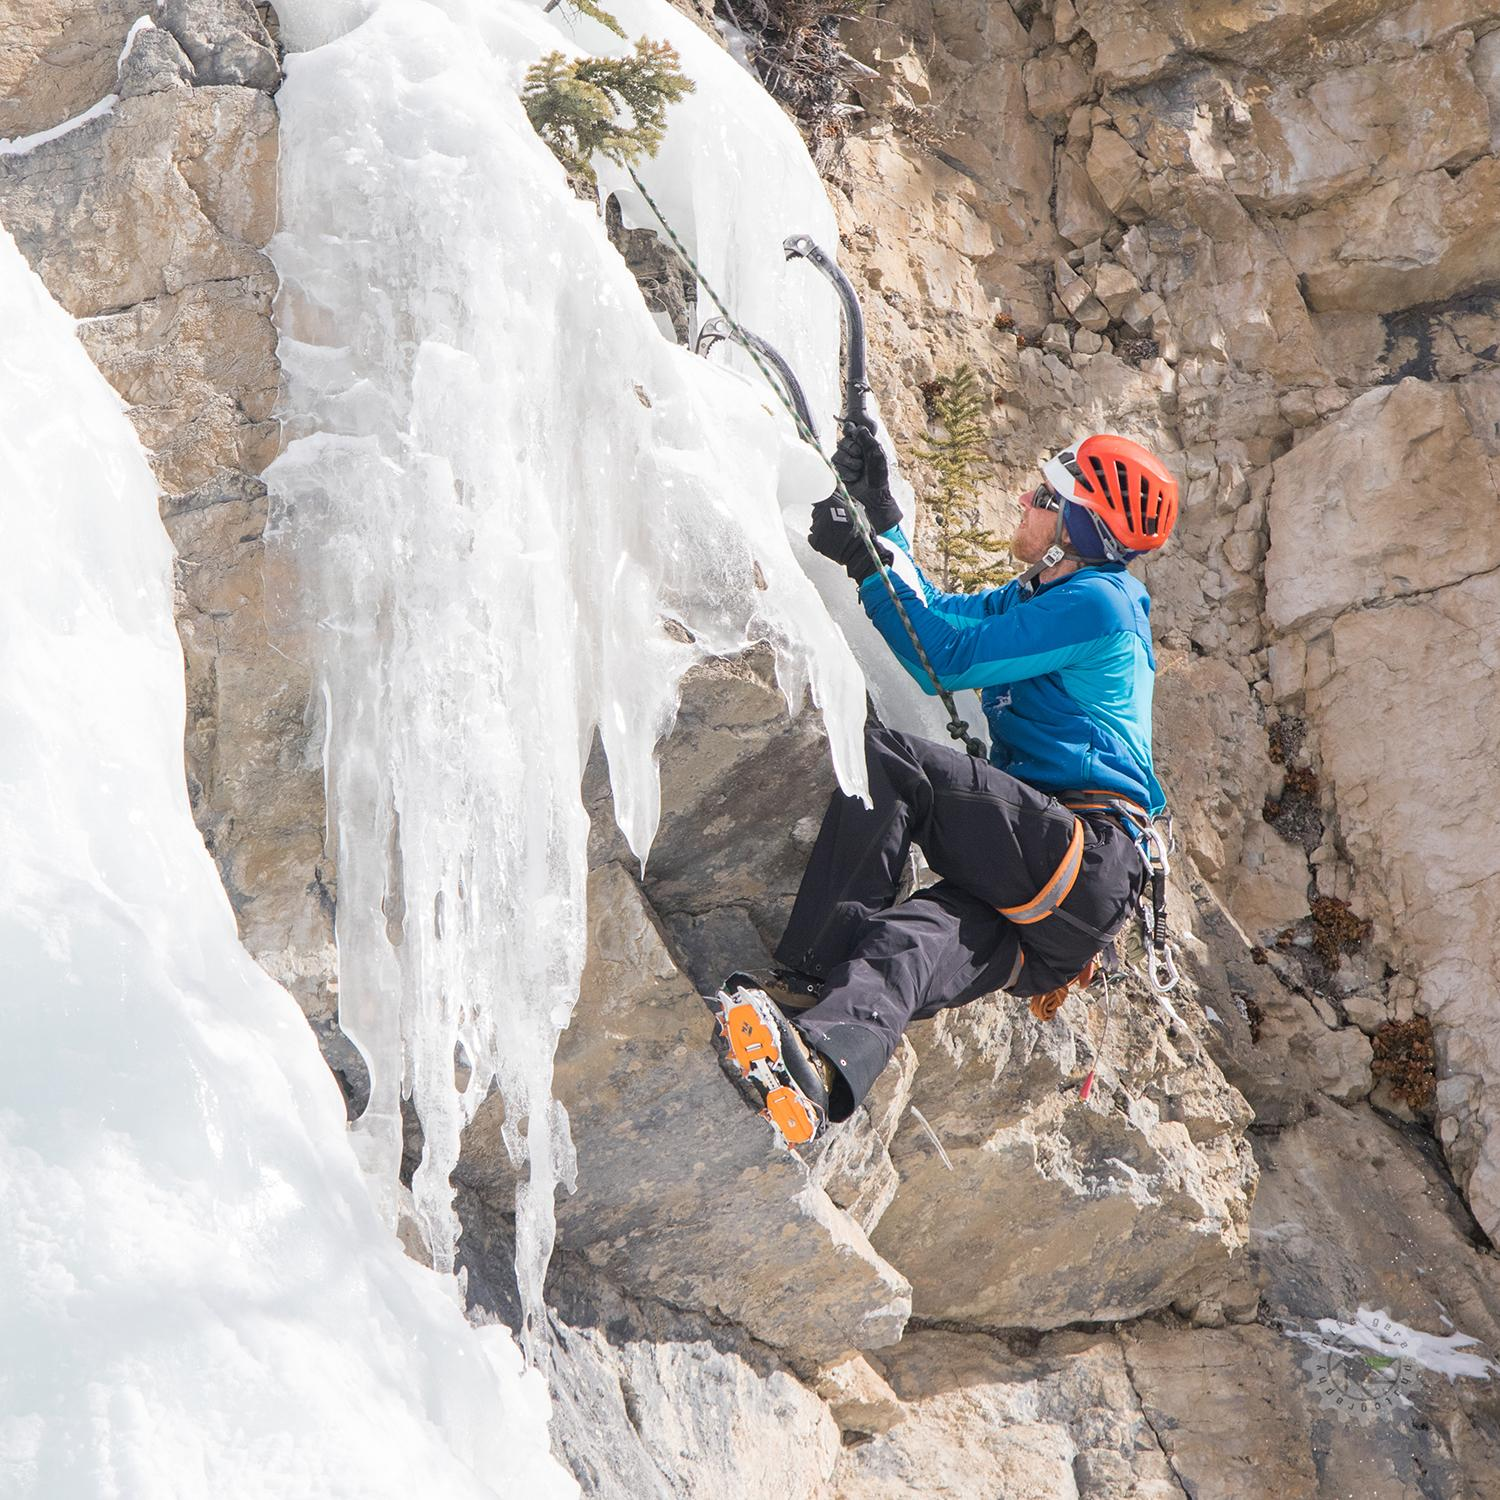 mike,gere,photo,photography,jasper,alberta,canada,adventure,national,park,ice,climb,ryan,titchner